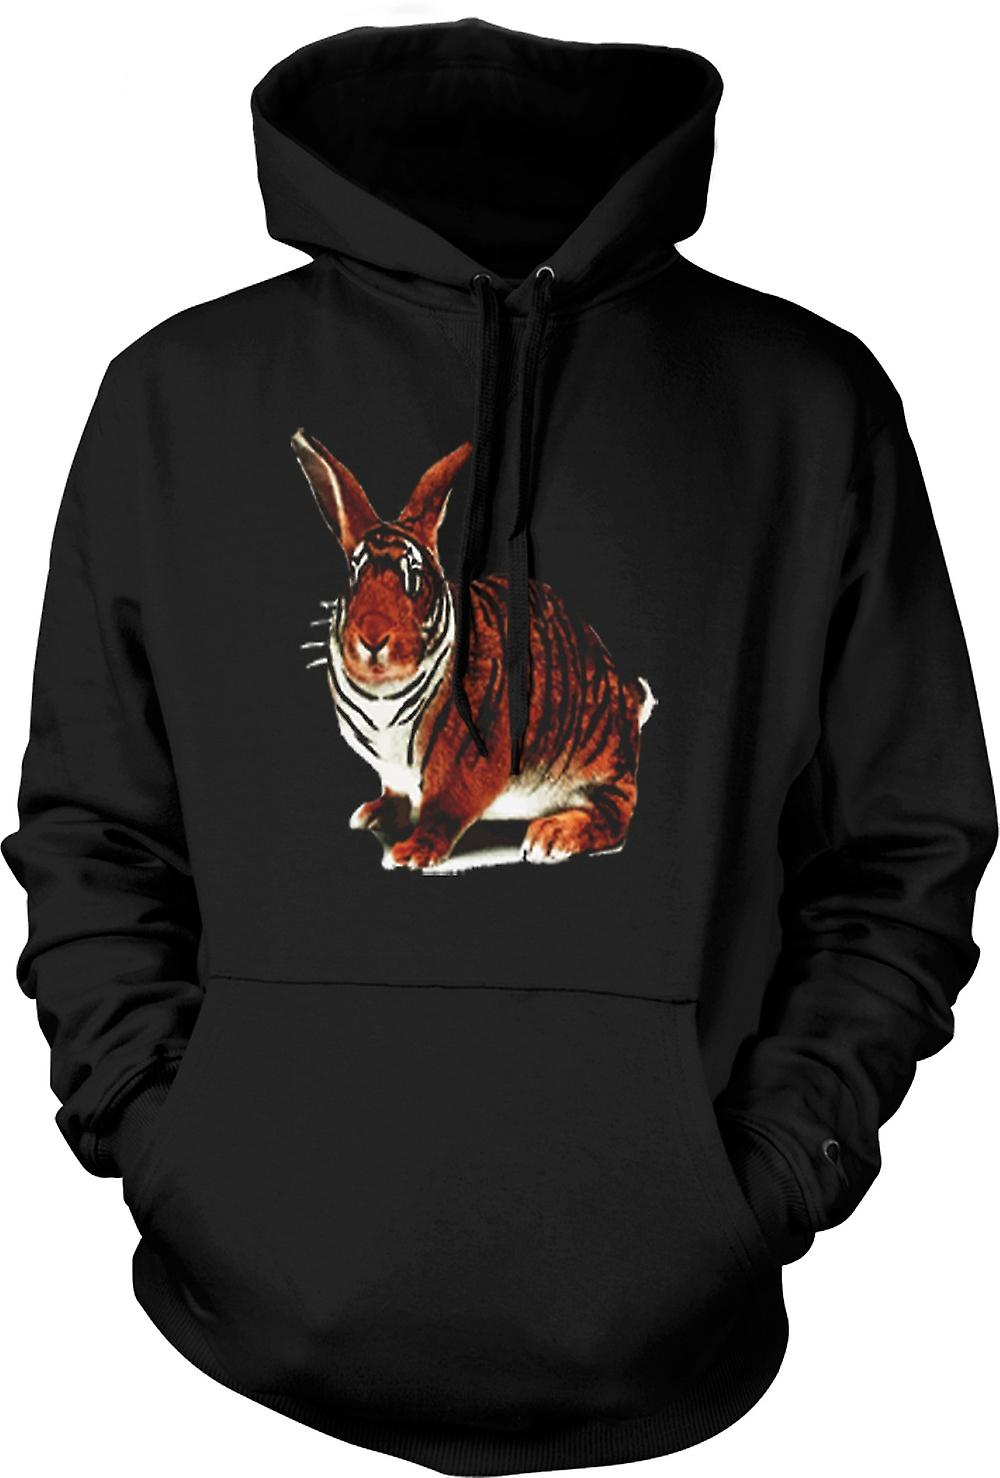 Mens hettegenser - Tiger Rabbit Pop Art Design